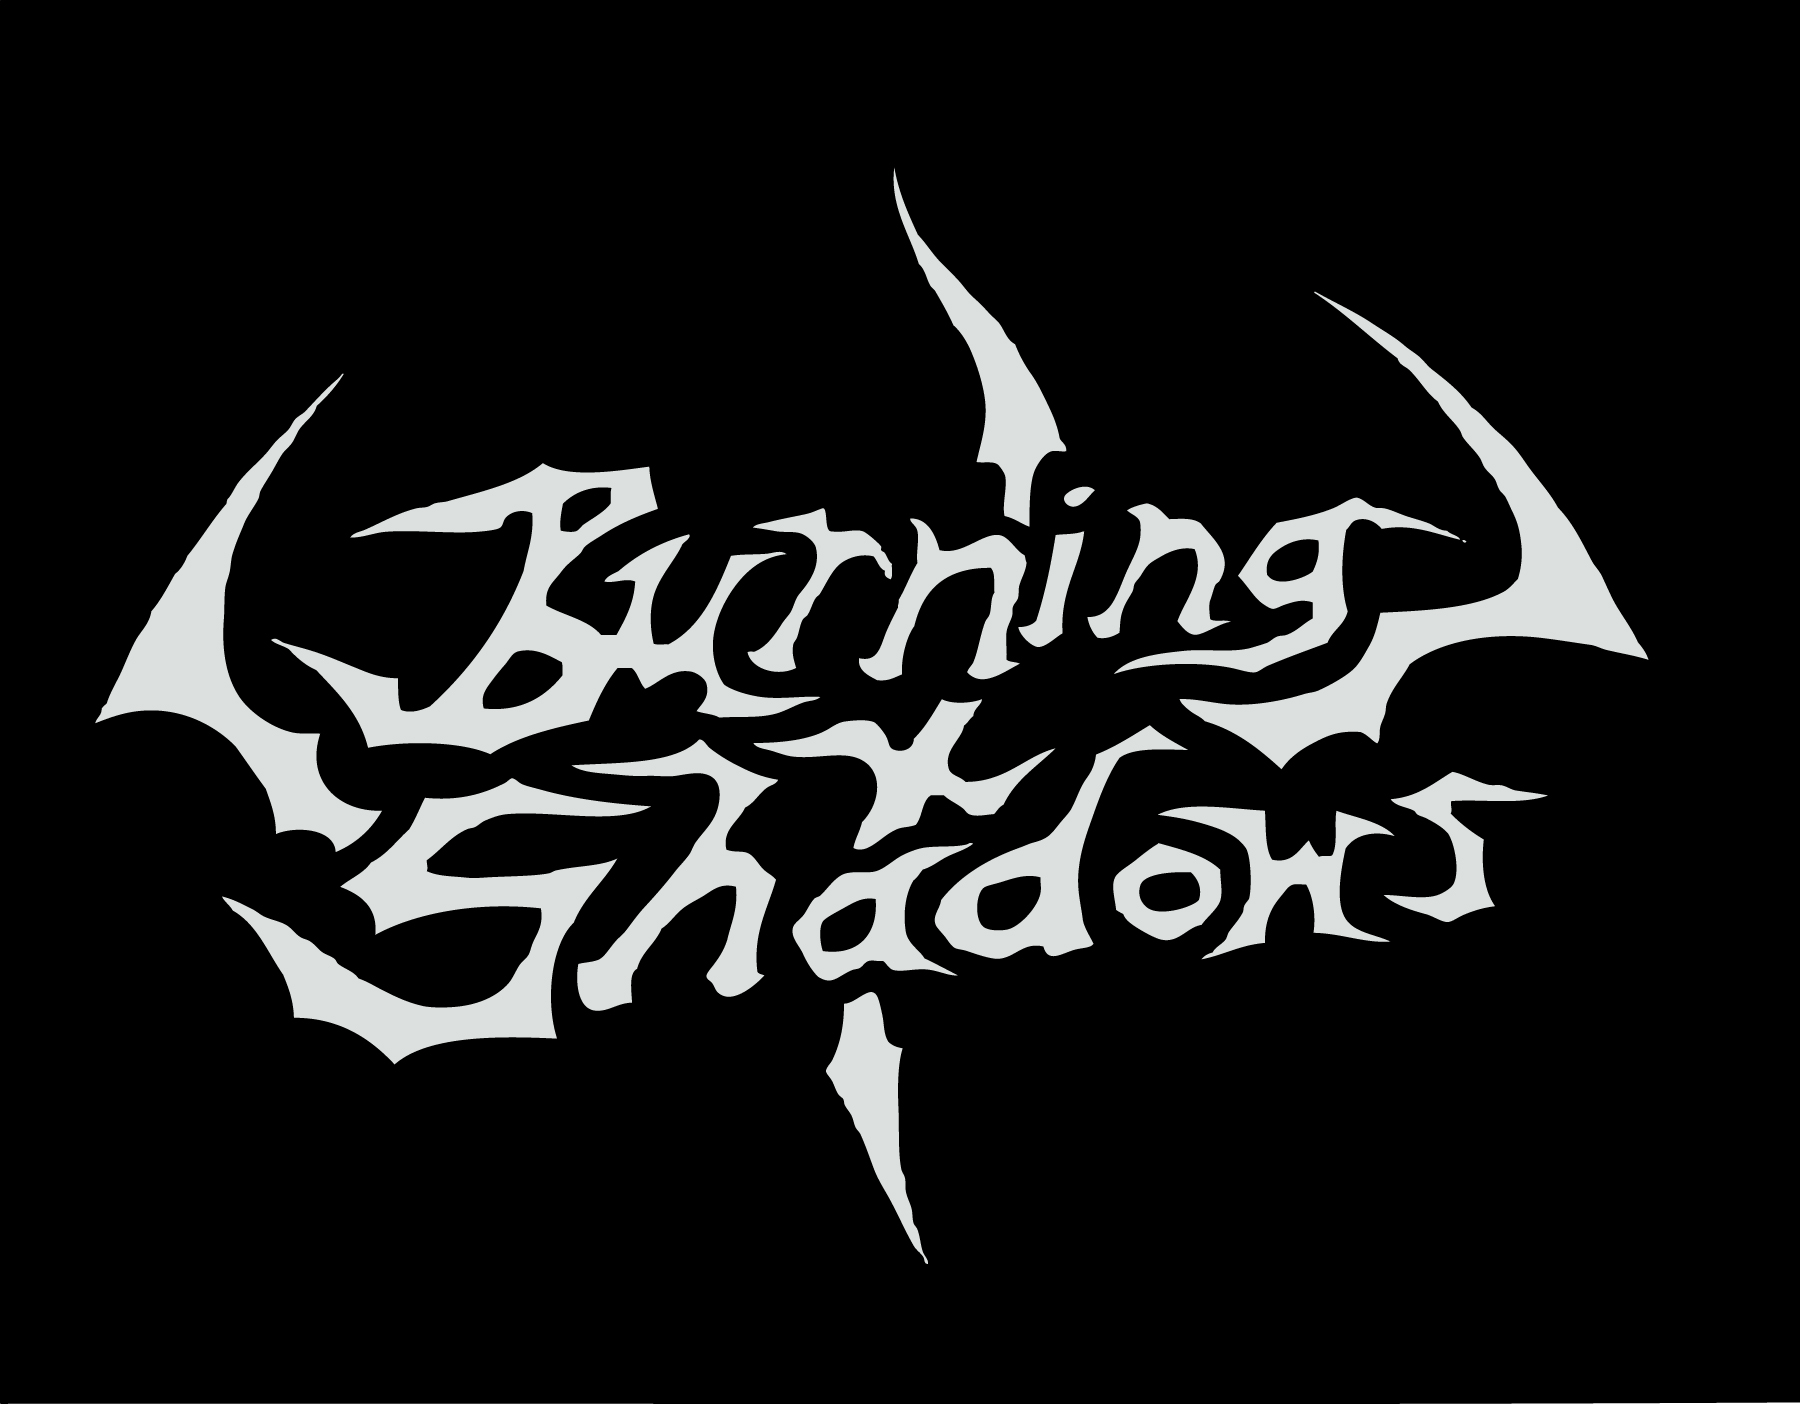 Original/Alternate Burning Shadows Logo